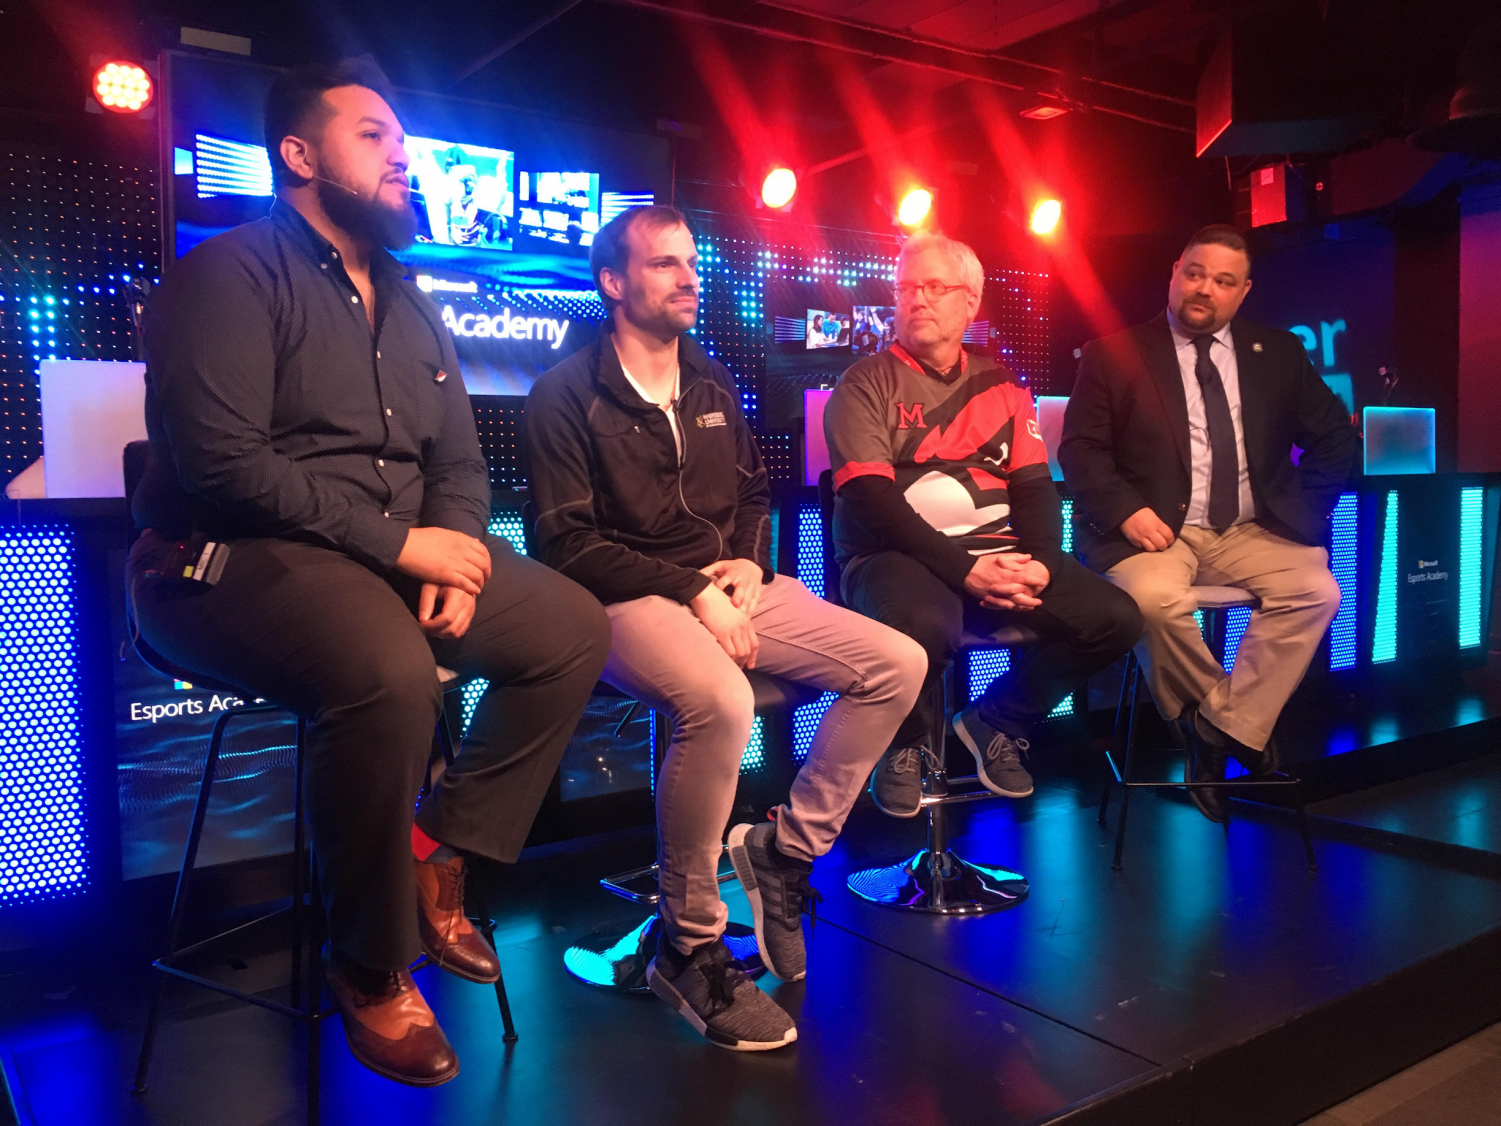 Panelists speak at an esports event at the Fifth Avenue flagship Microsoft Store.